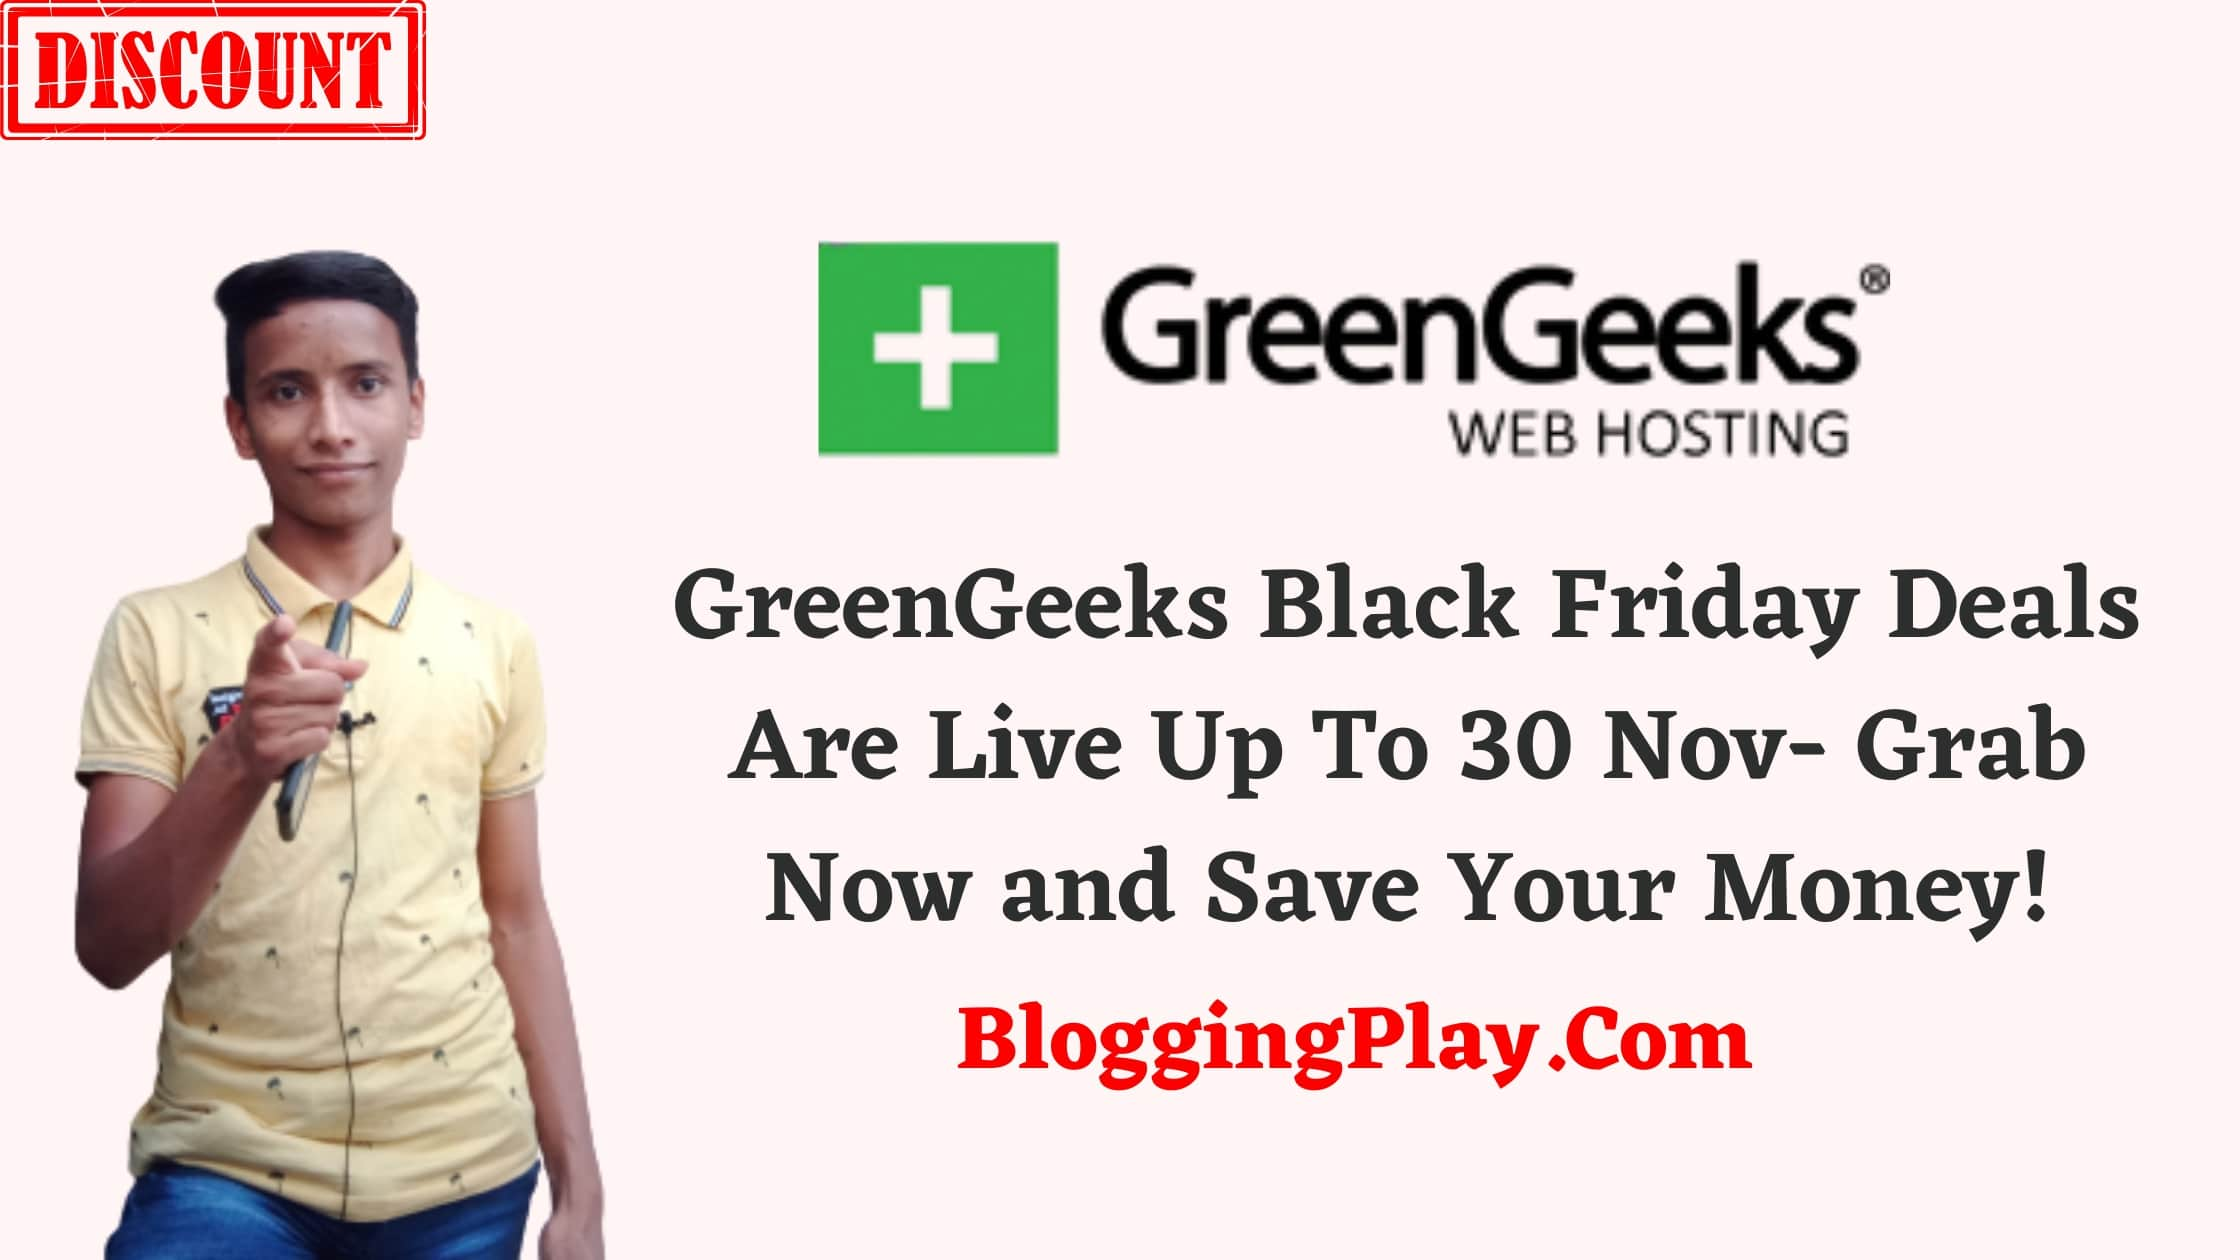 GreenGeeks Black Friday Deals Offer